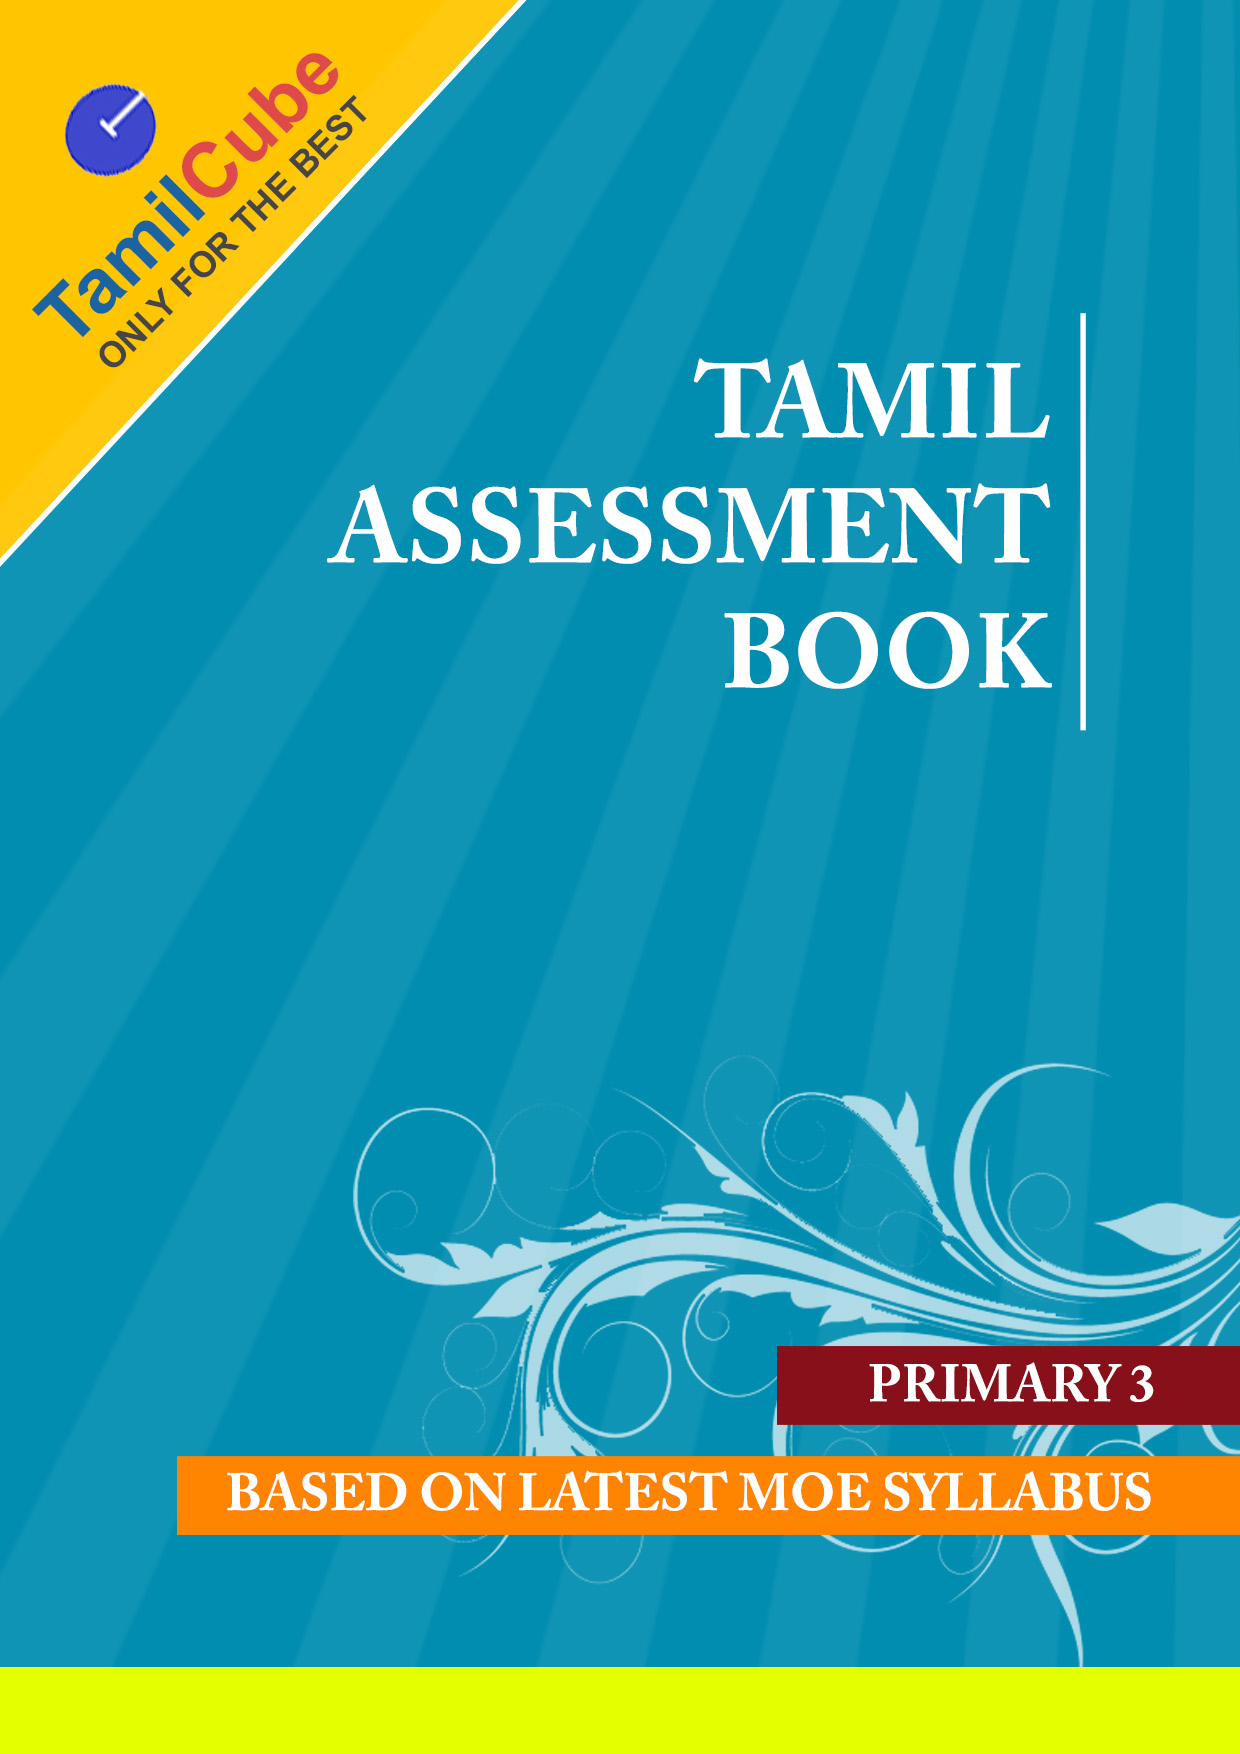 Free Primary 3 Tamil Test Papers Download